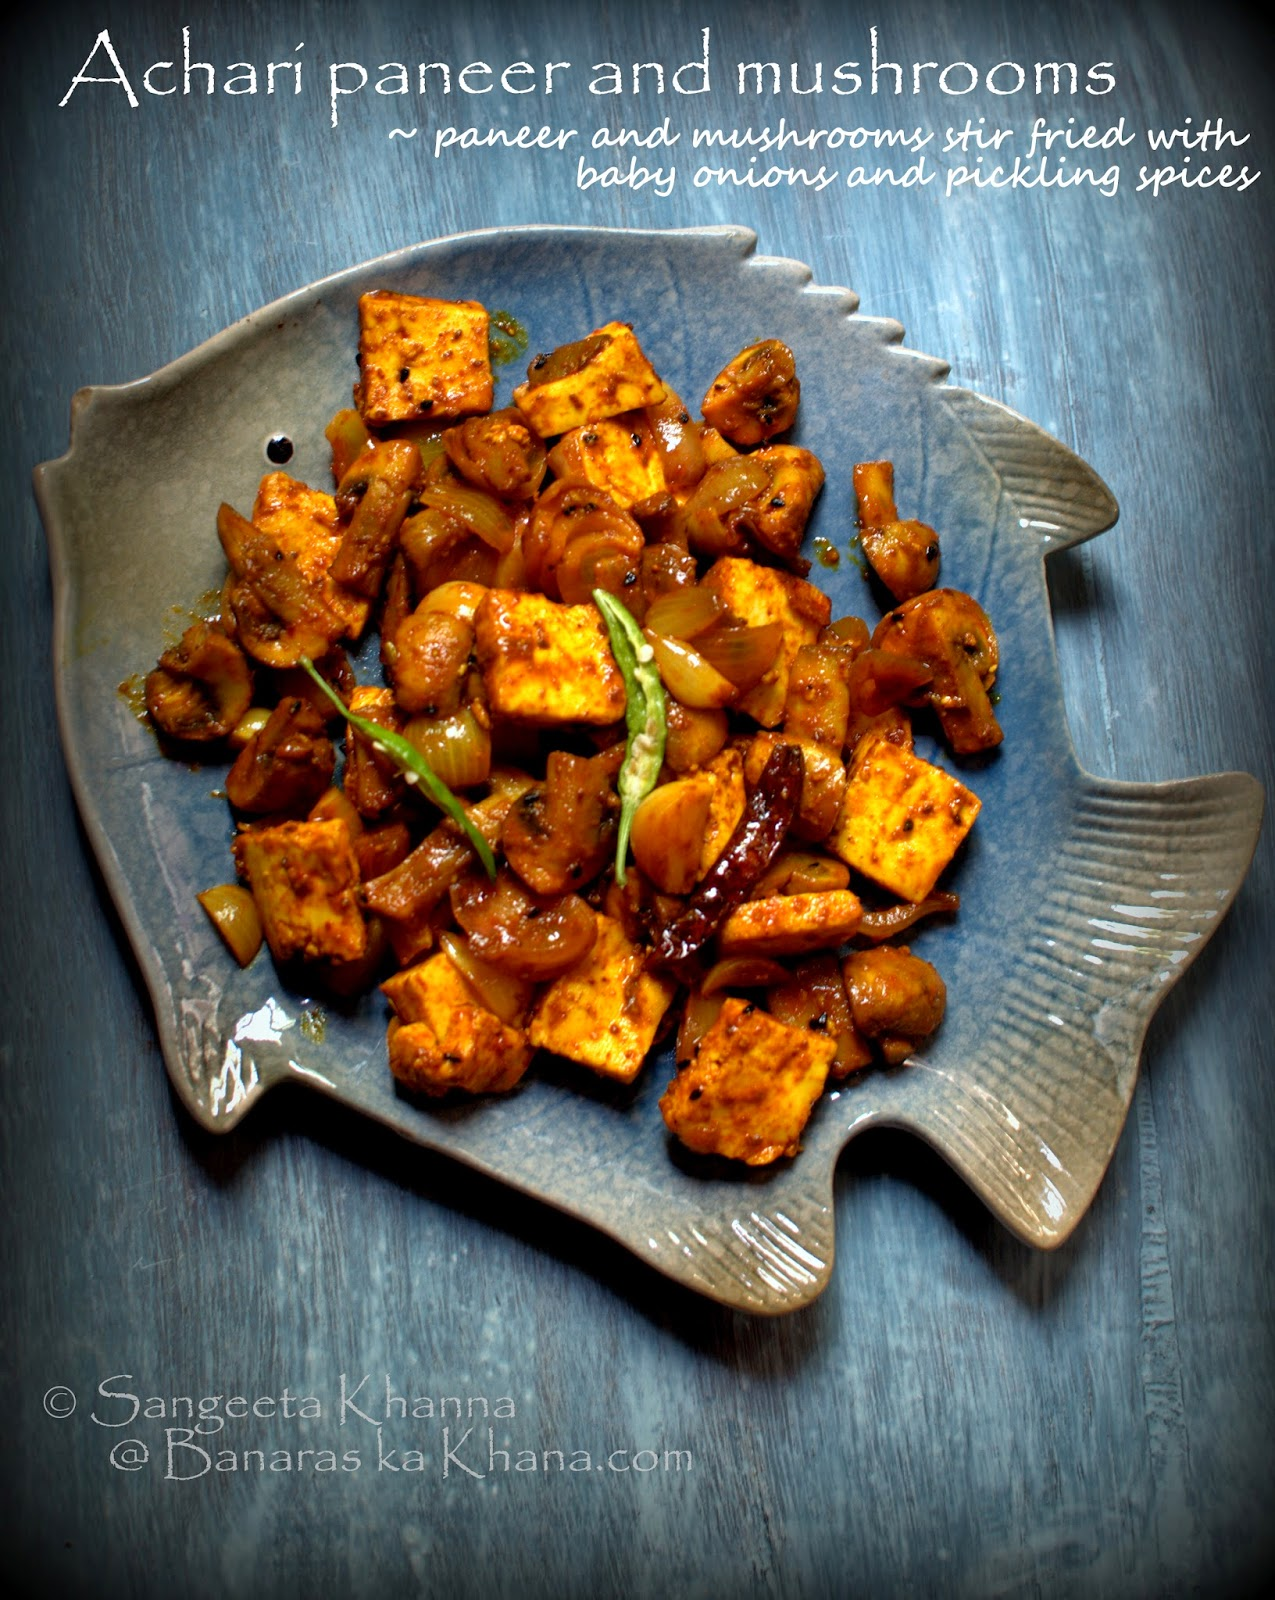 achari paneer and mushrooms   paneer and mushrooms stir fried with baby onions in indian pickling spices